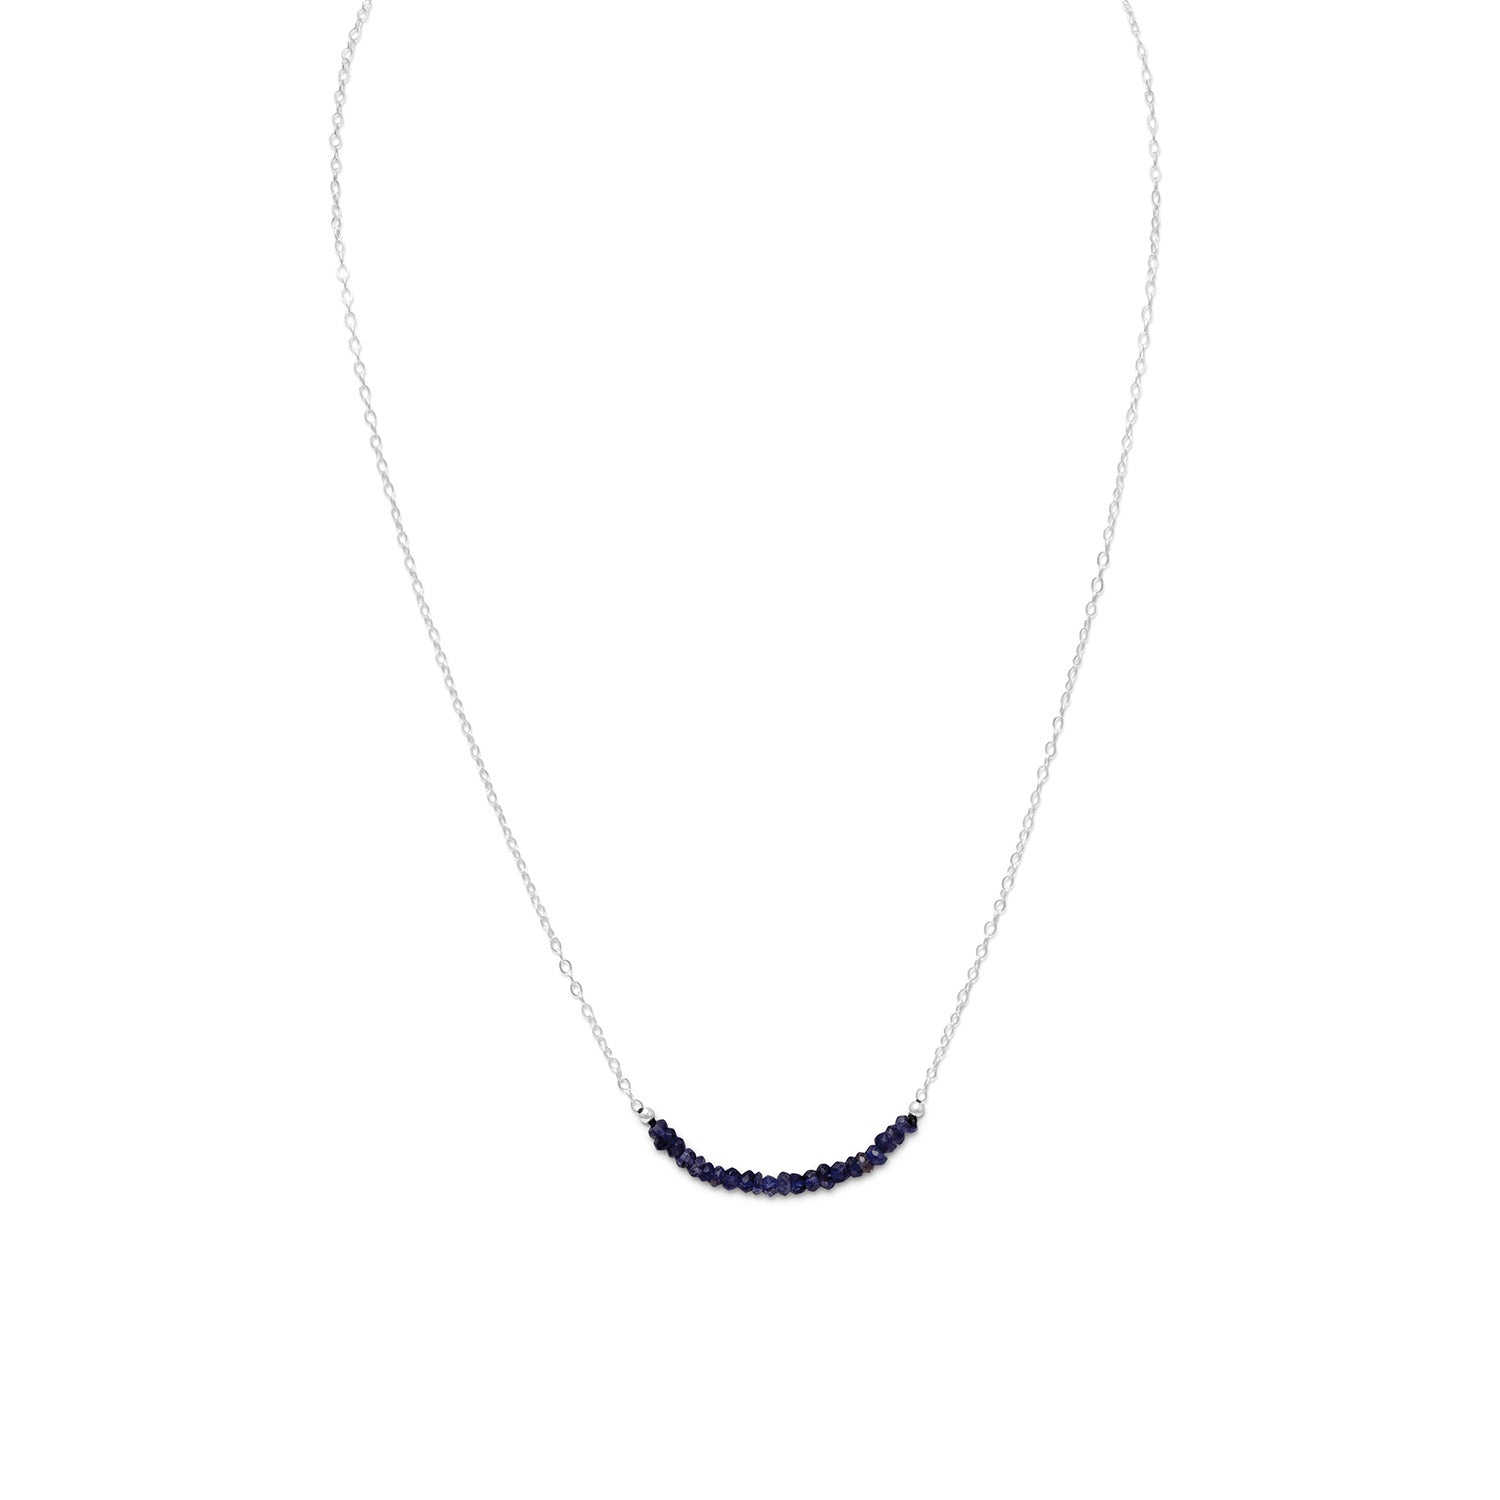 stone river van disc peterson necklace product london iolite